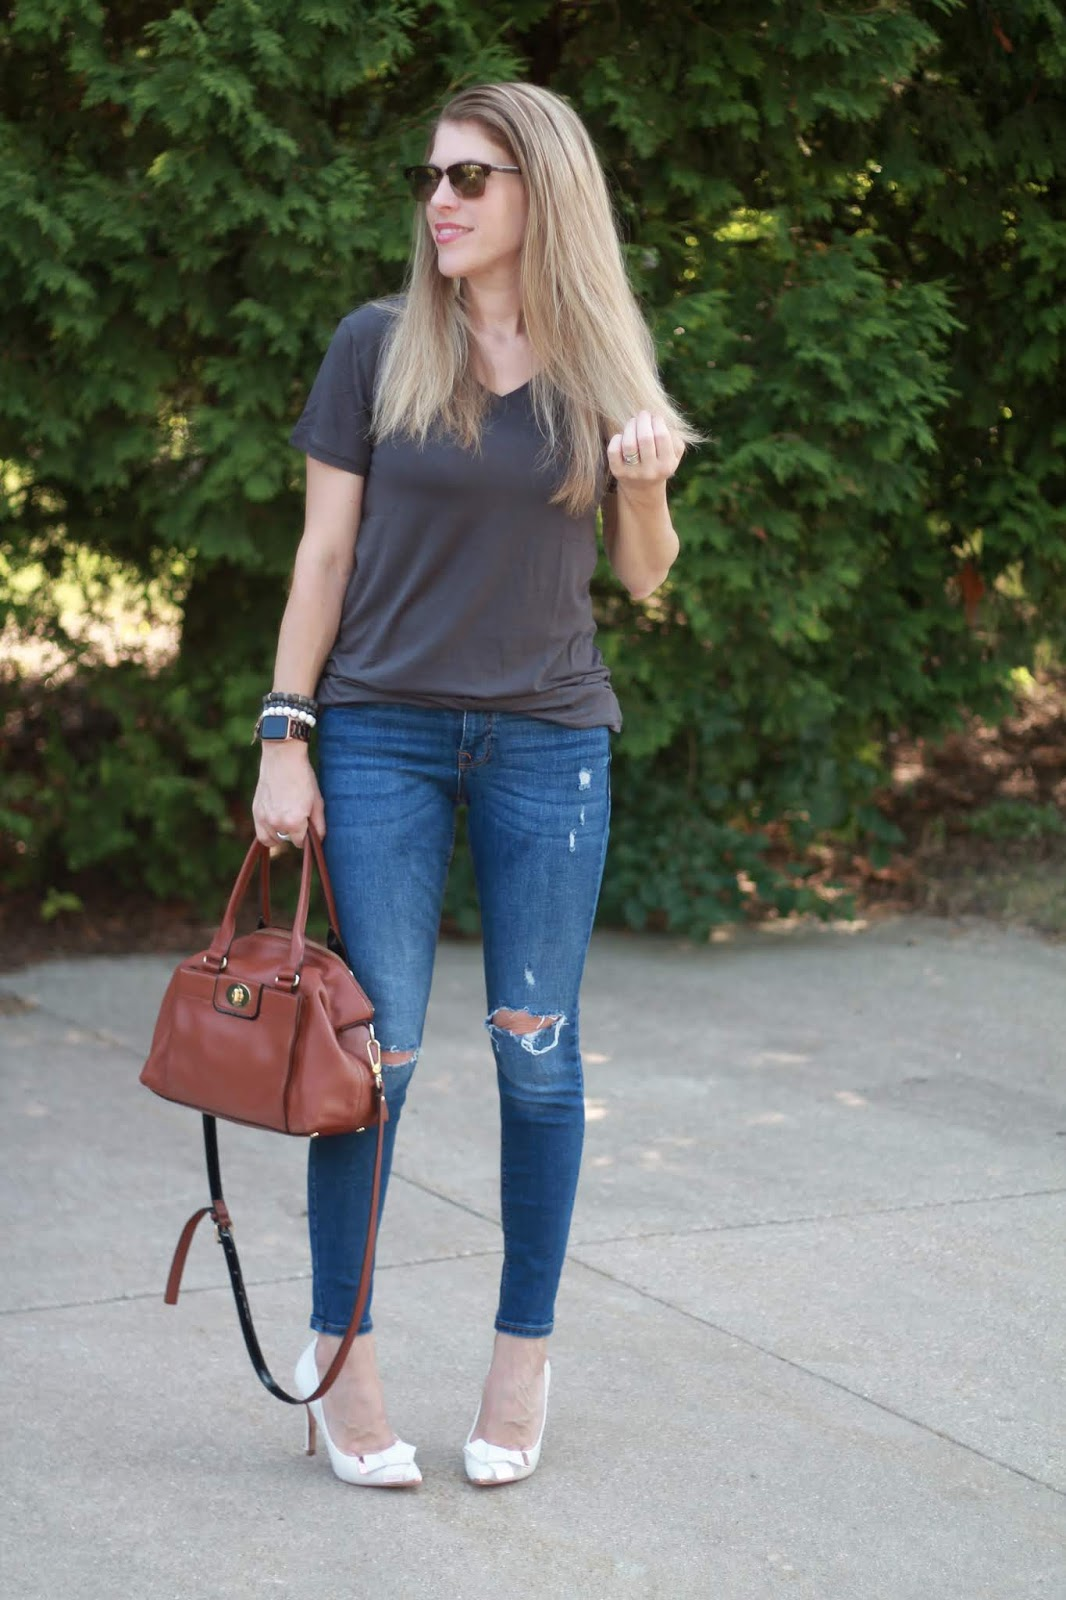 grey tee, distressed jeans, white heels, white beaded tassel earrings